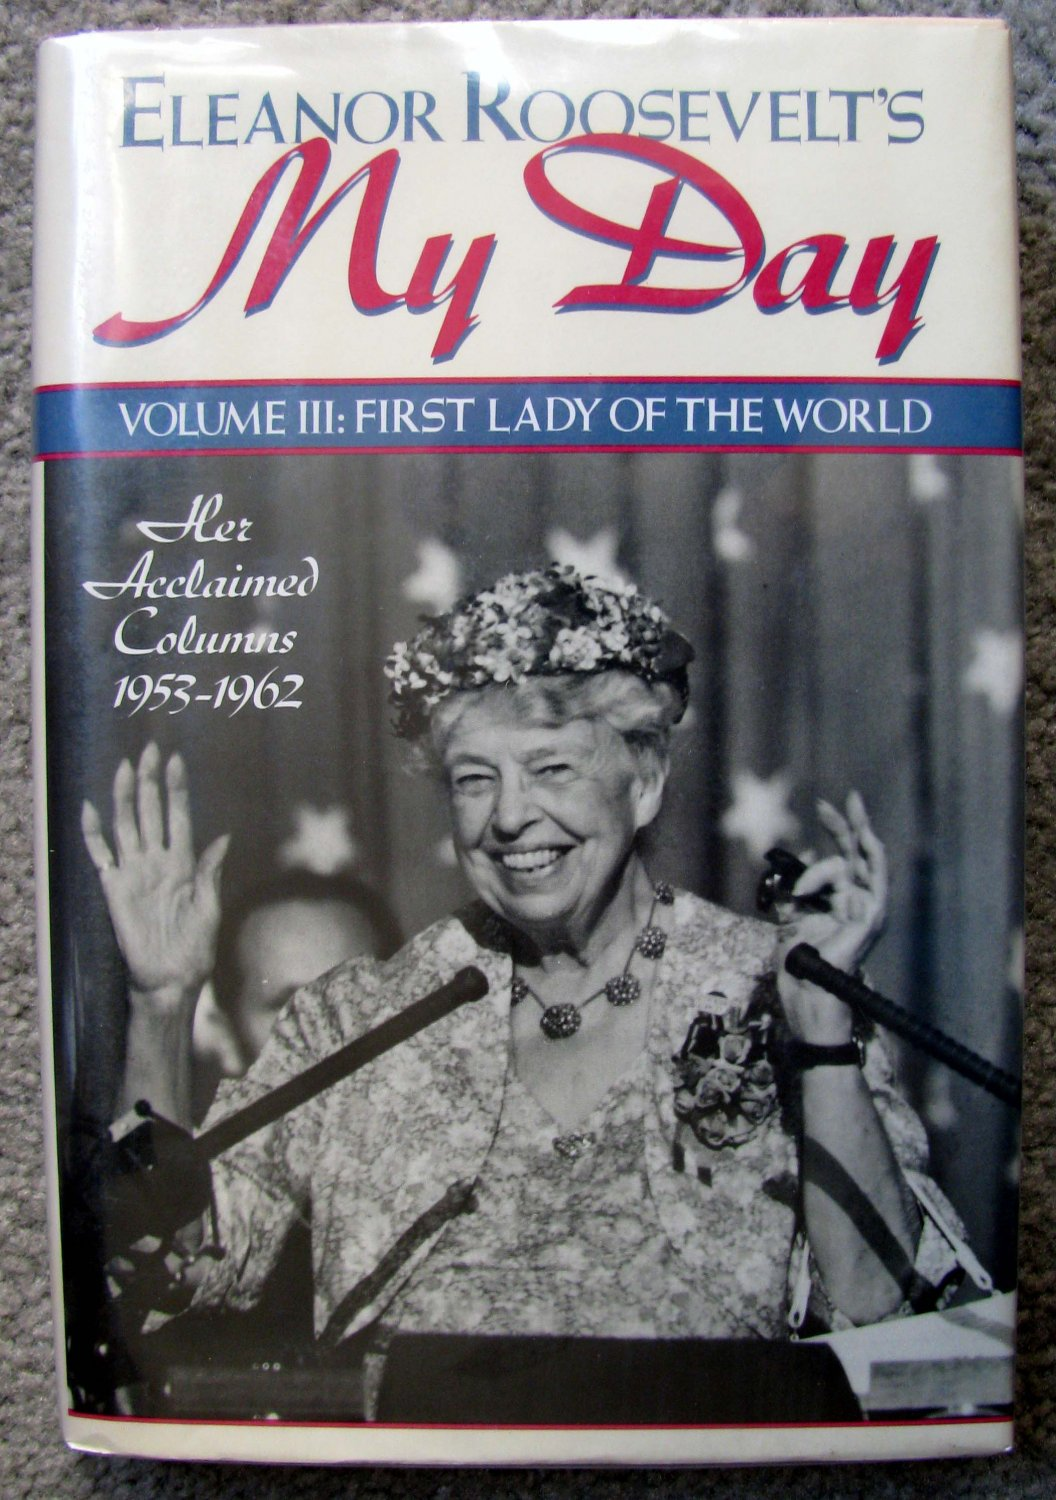 Eleanor Roosevelt's My Day: First Lady of the World : Her Acclaimed Columns 1953-1962 (F.D.R.)